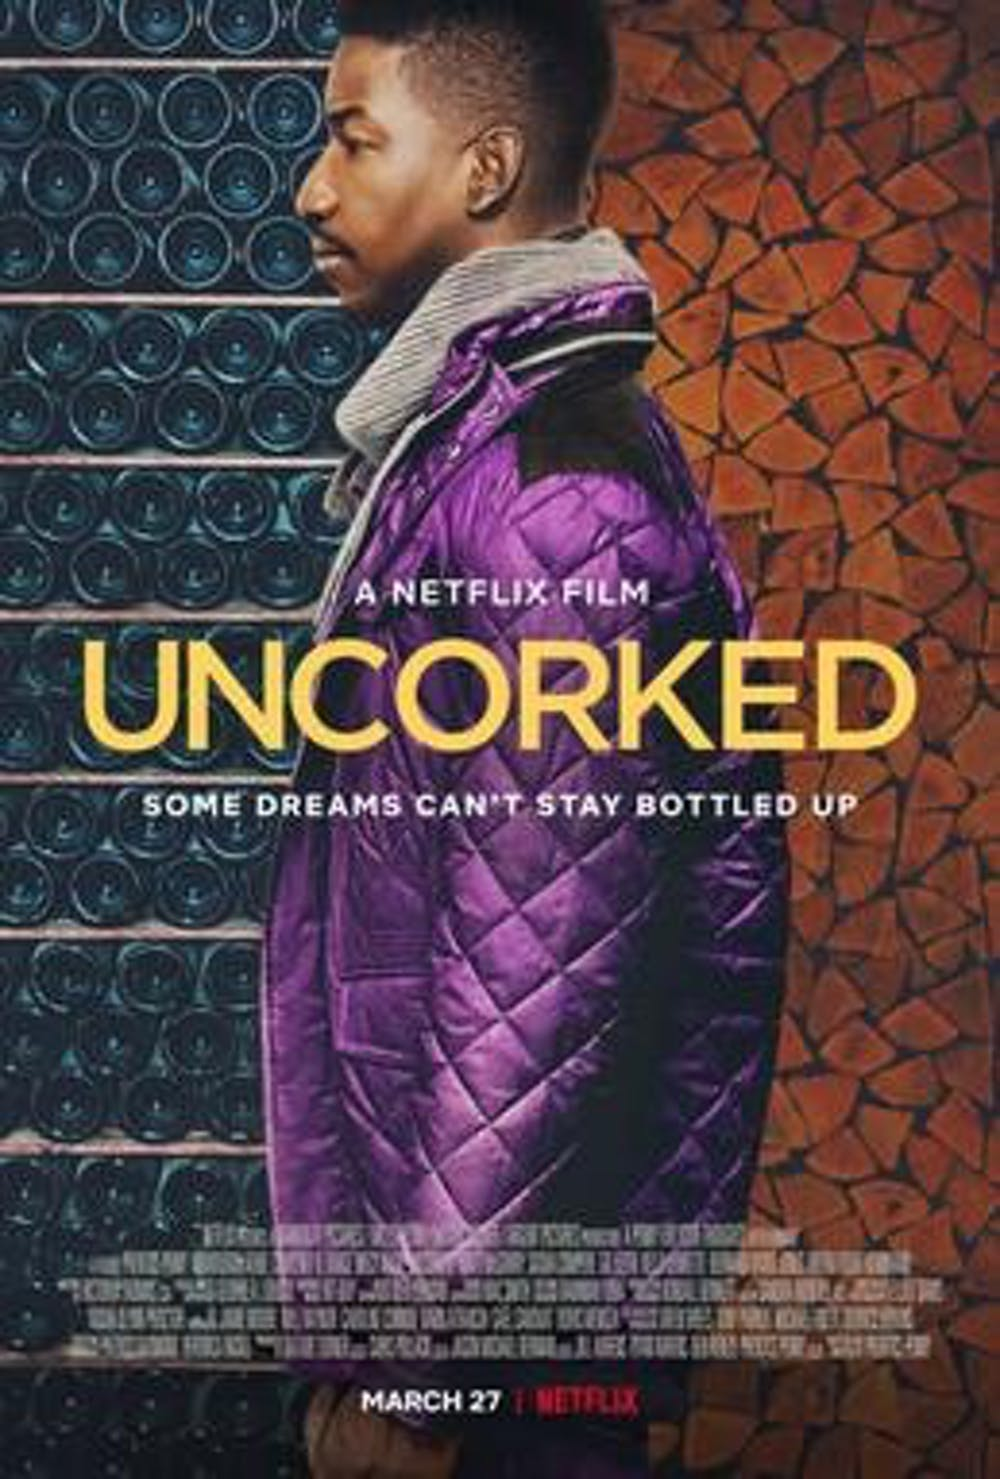 "<p>""Uncorked,"" a new Netflix film from Prentice Penny, was released March 27 and tells the story of a young man who wants to pursue his dream of becoming a master sommelier.&nbsp;</p>"